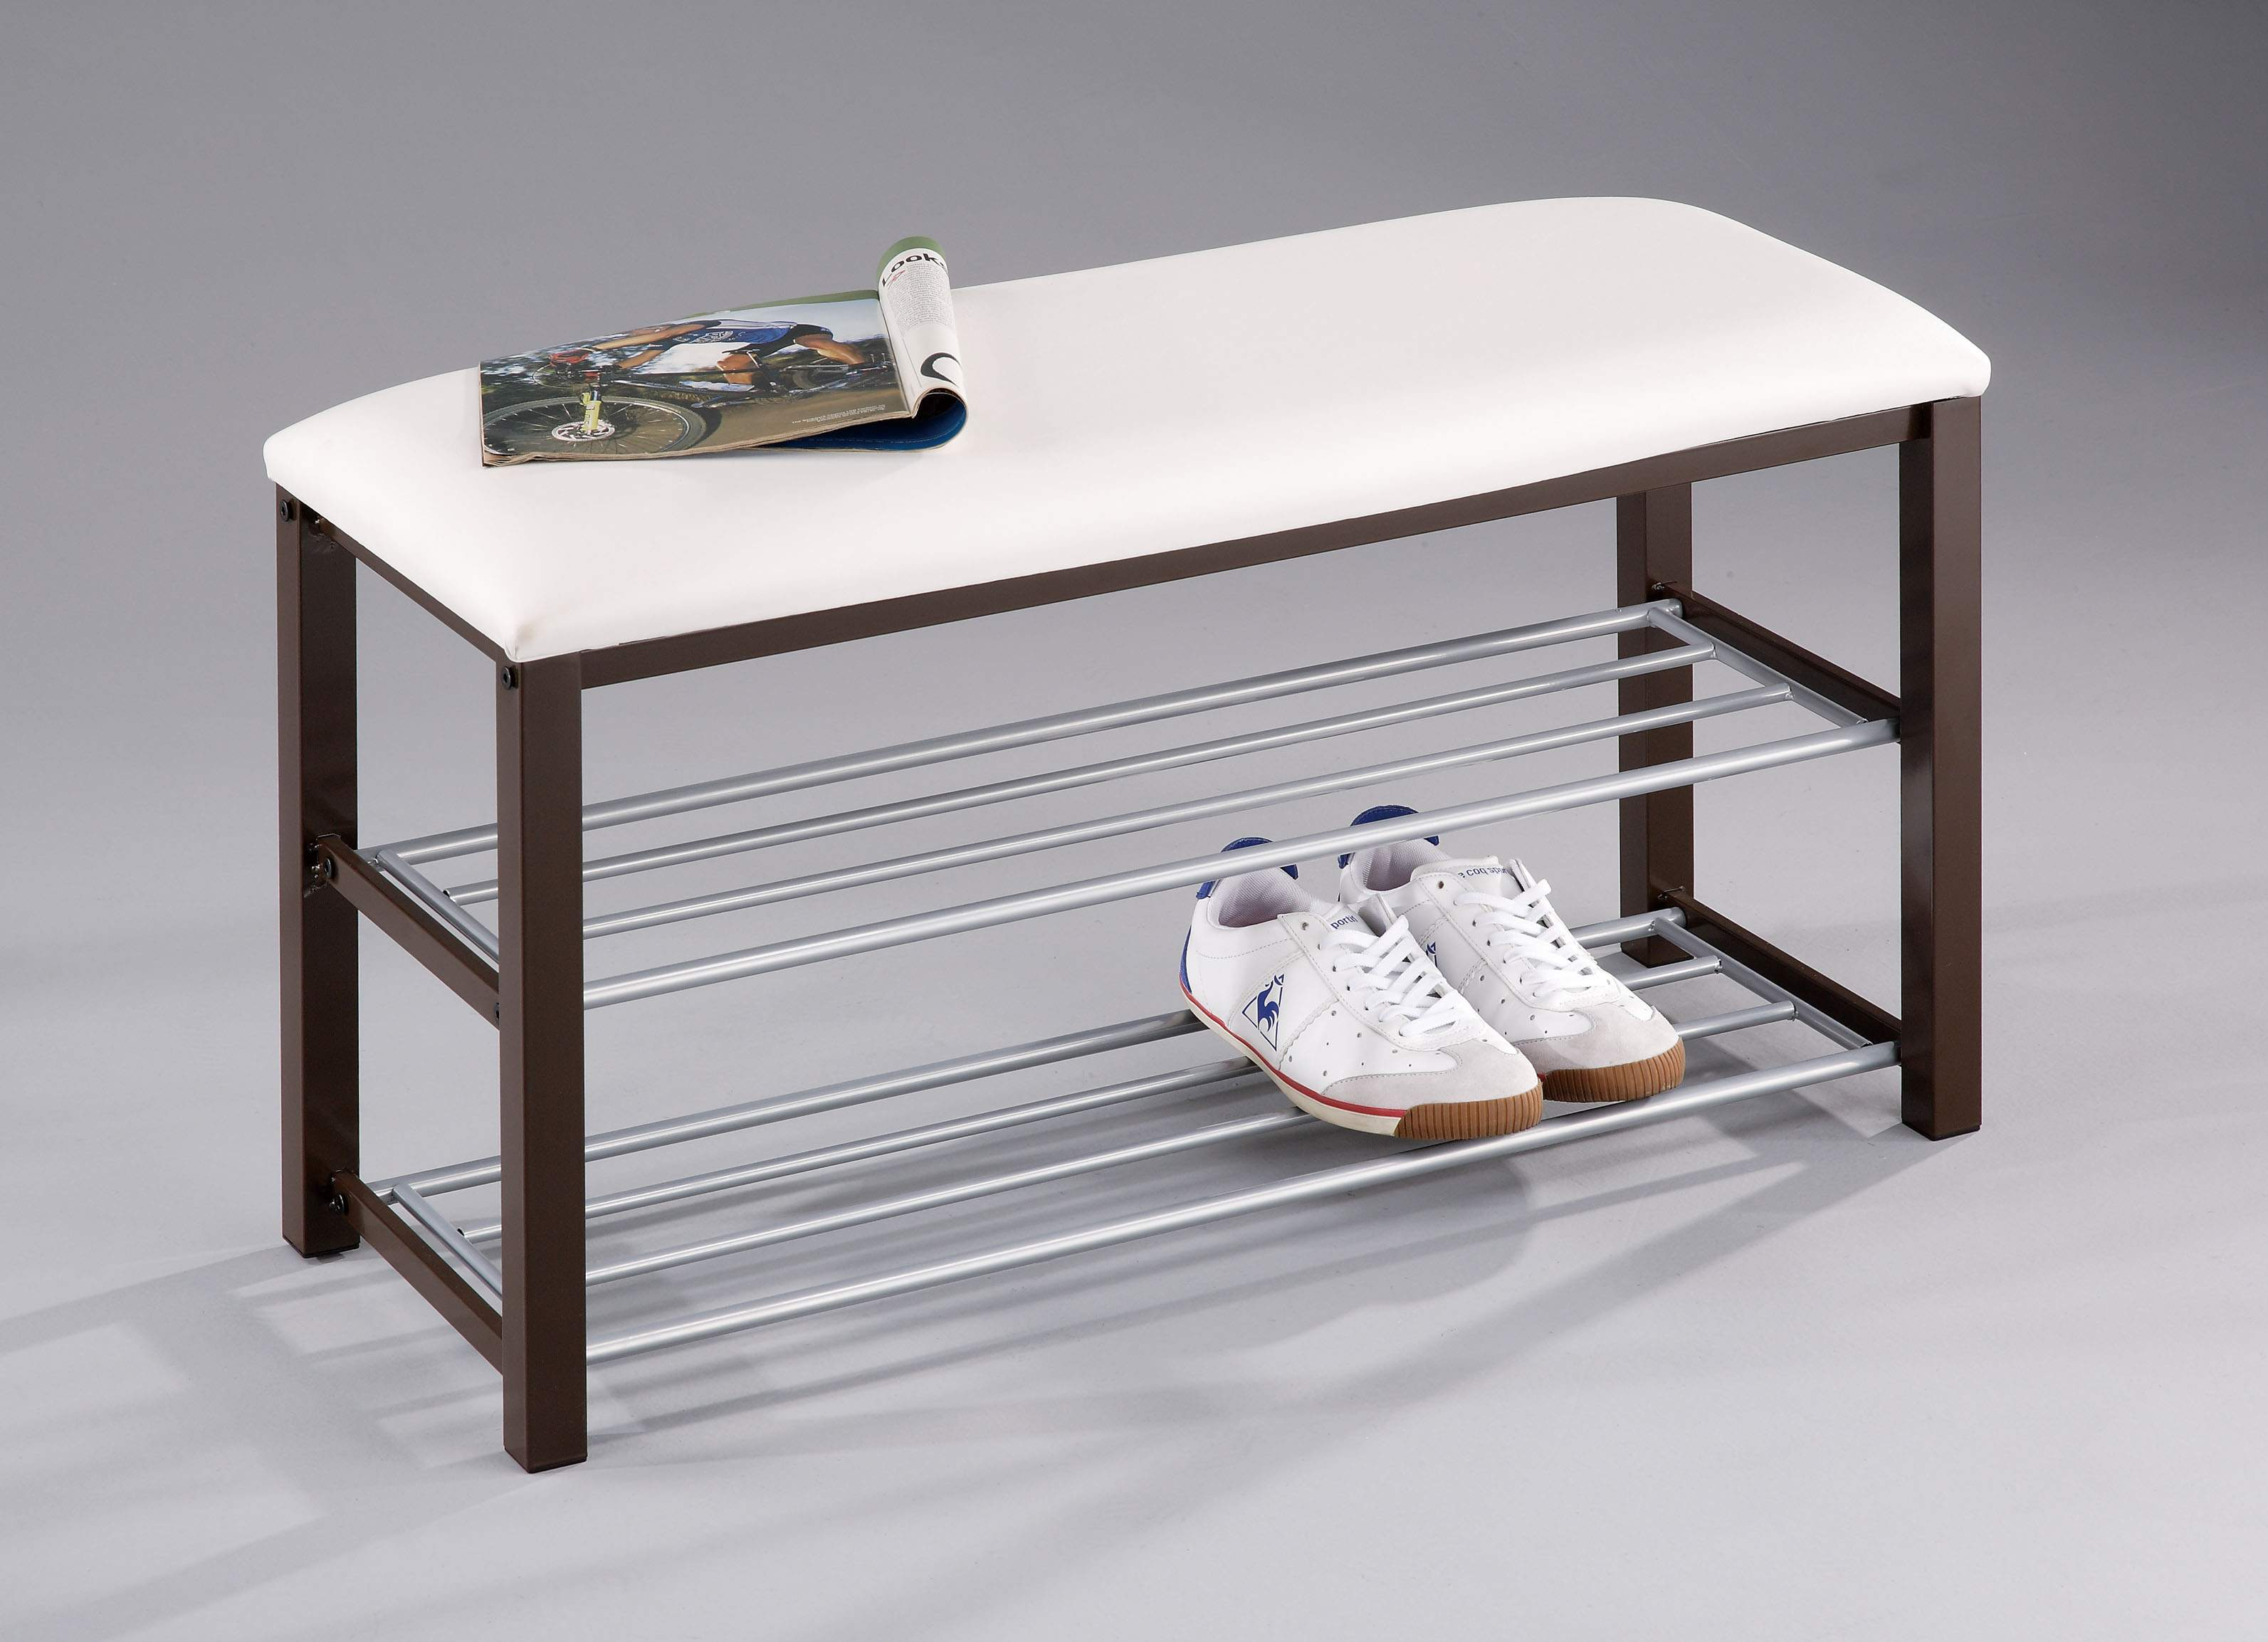 2 Tier Shoes Rack Bench   SR011 |